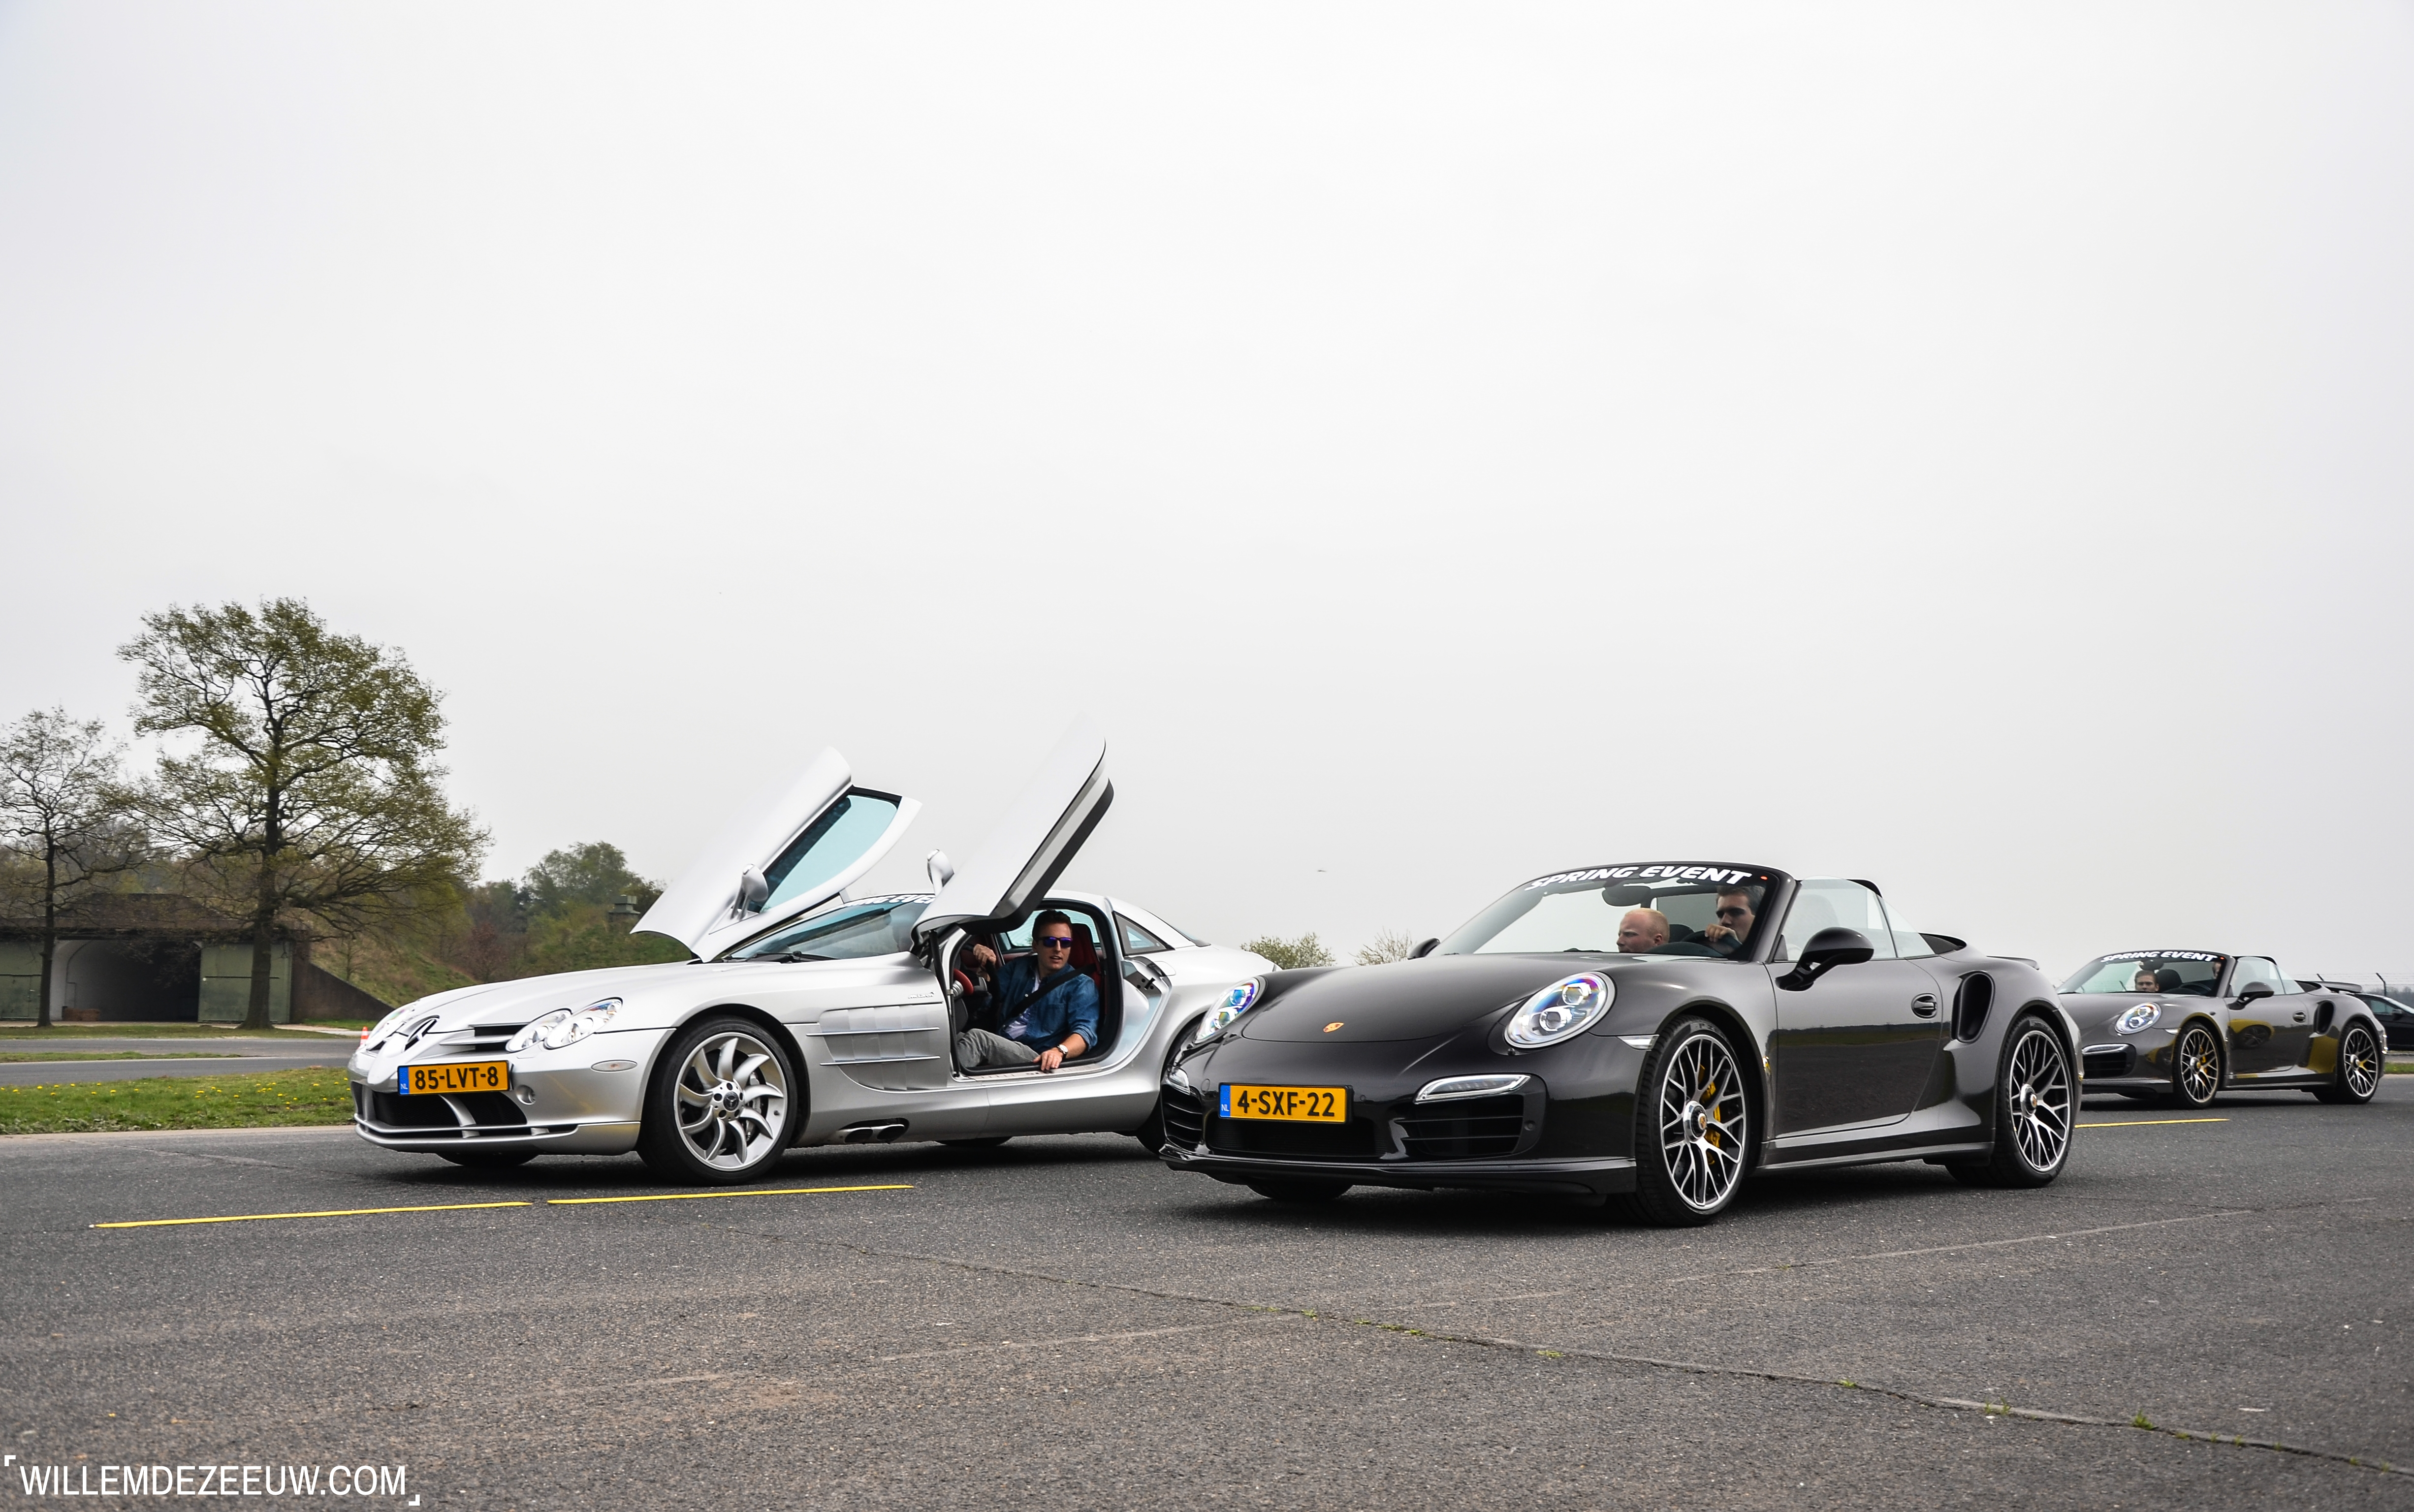 Spring Event 2014 - www.hartvoorautos.nl